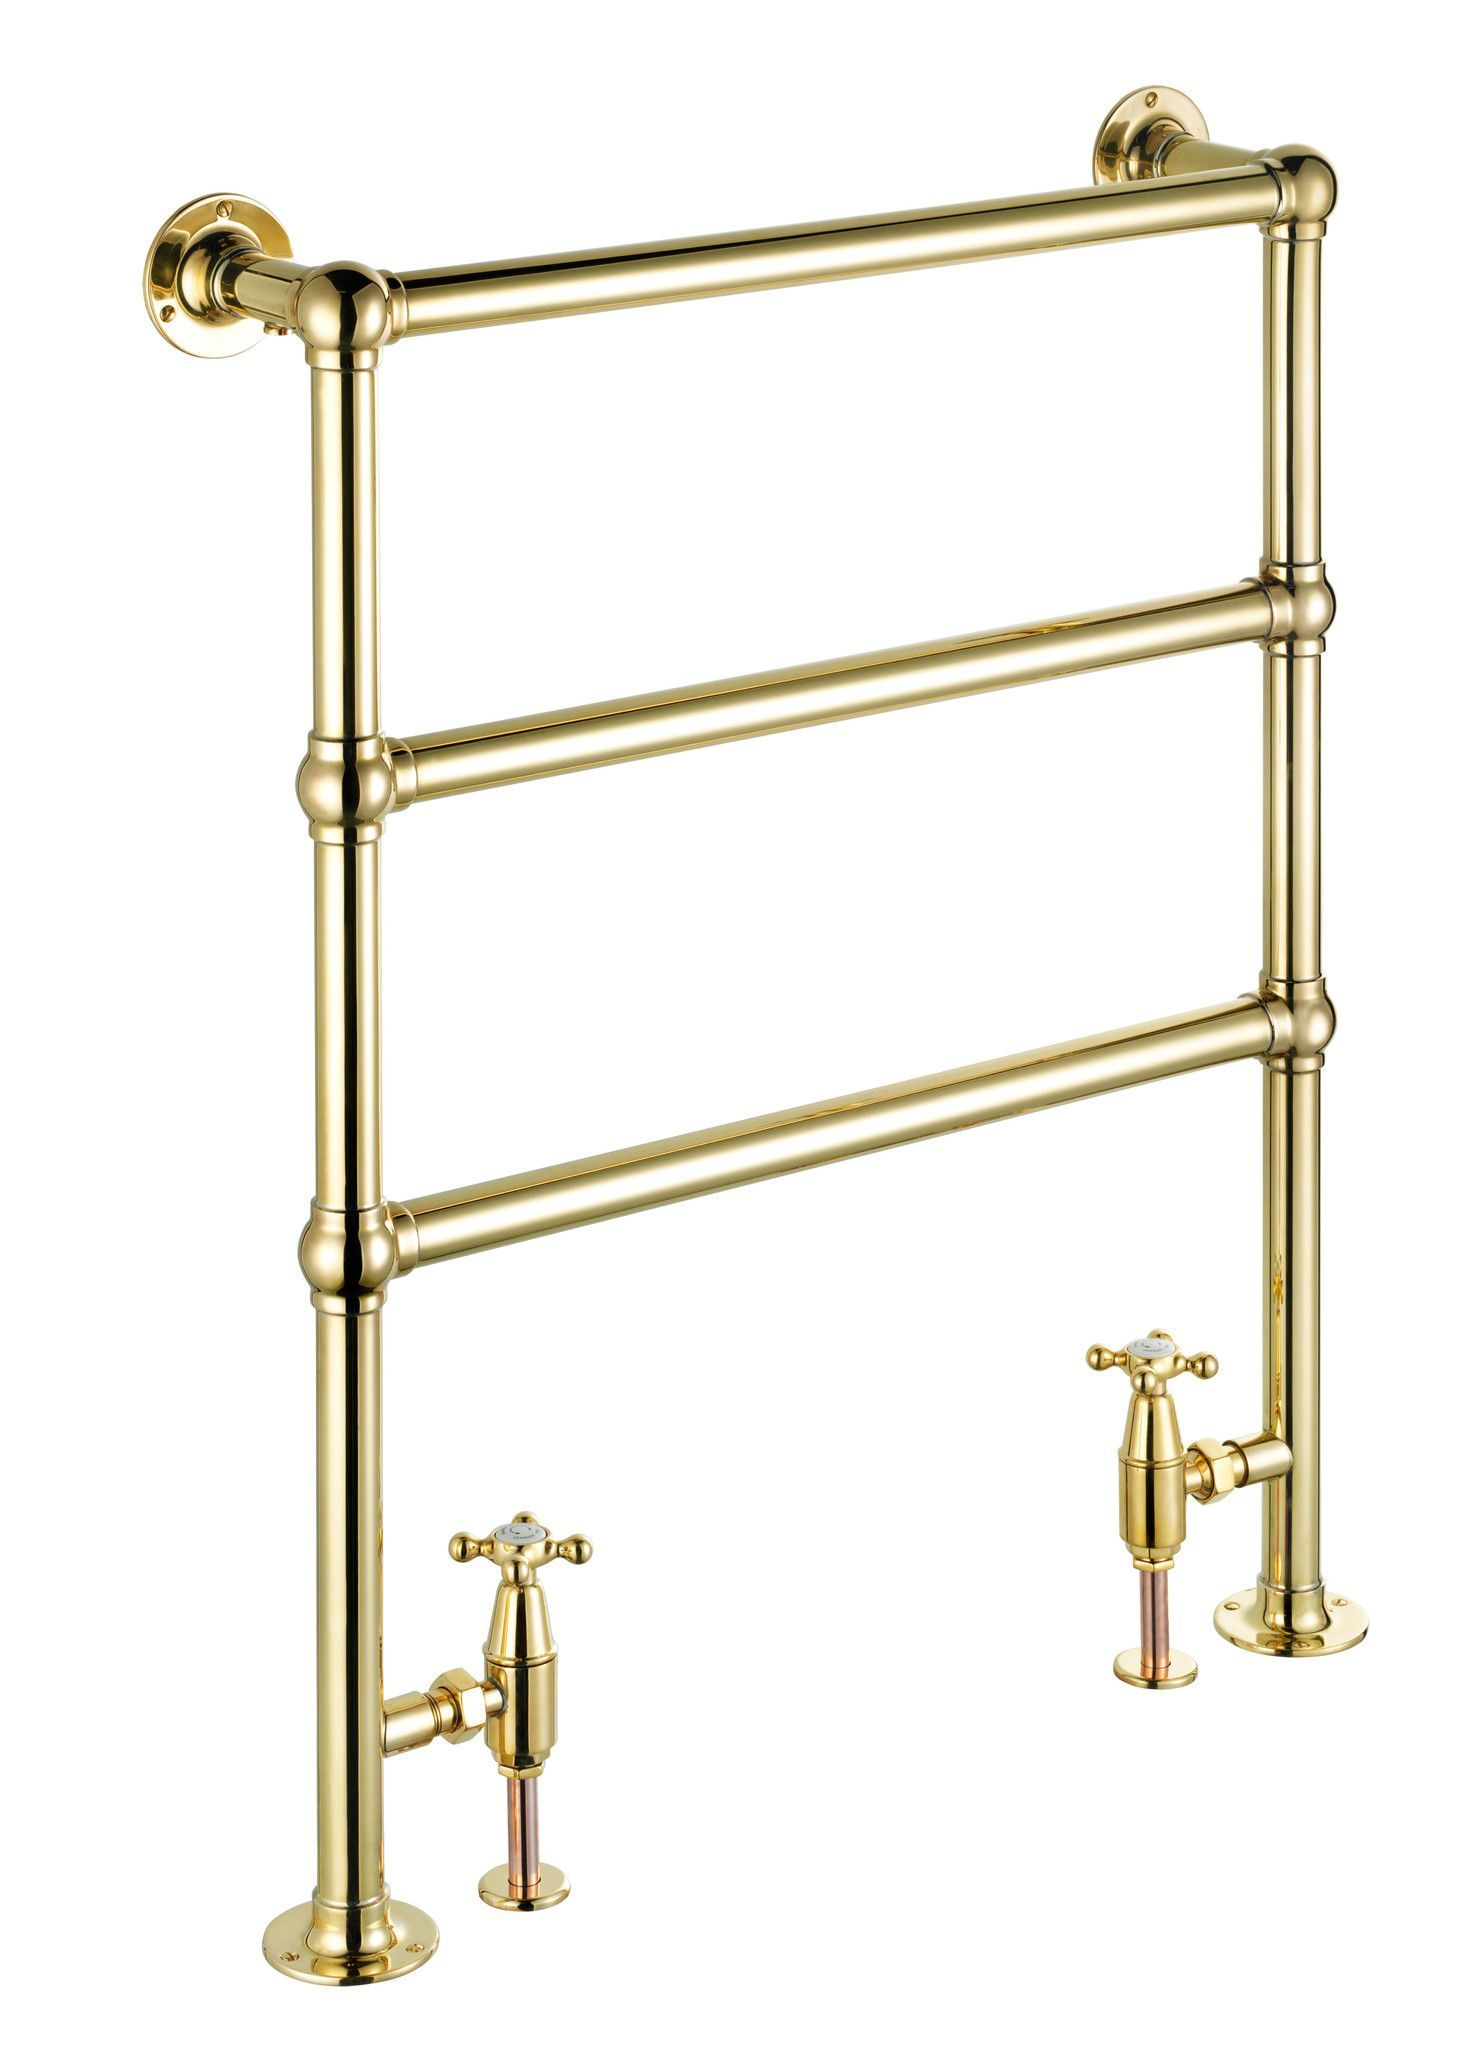 bathroom faucets pewter complete products ideas antique faucet full bathroomaccessories fittings images accessories bath brass of uk unlacquered example